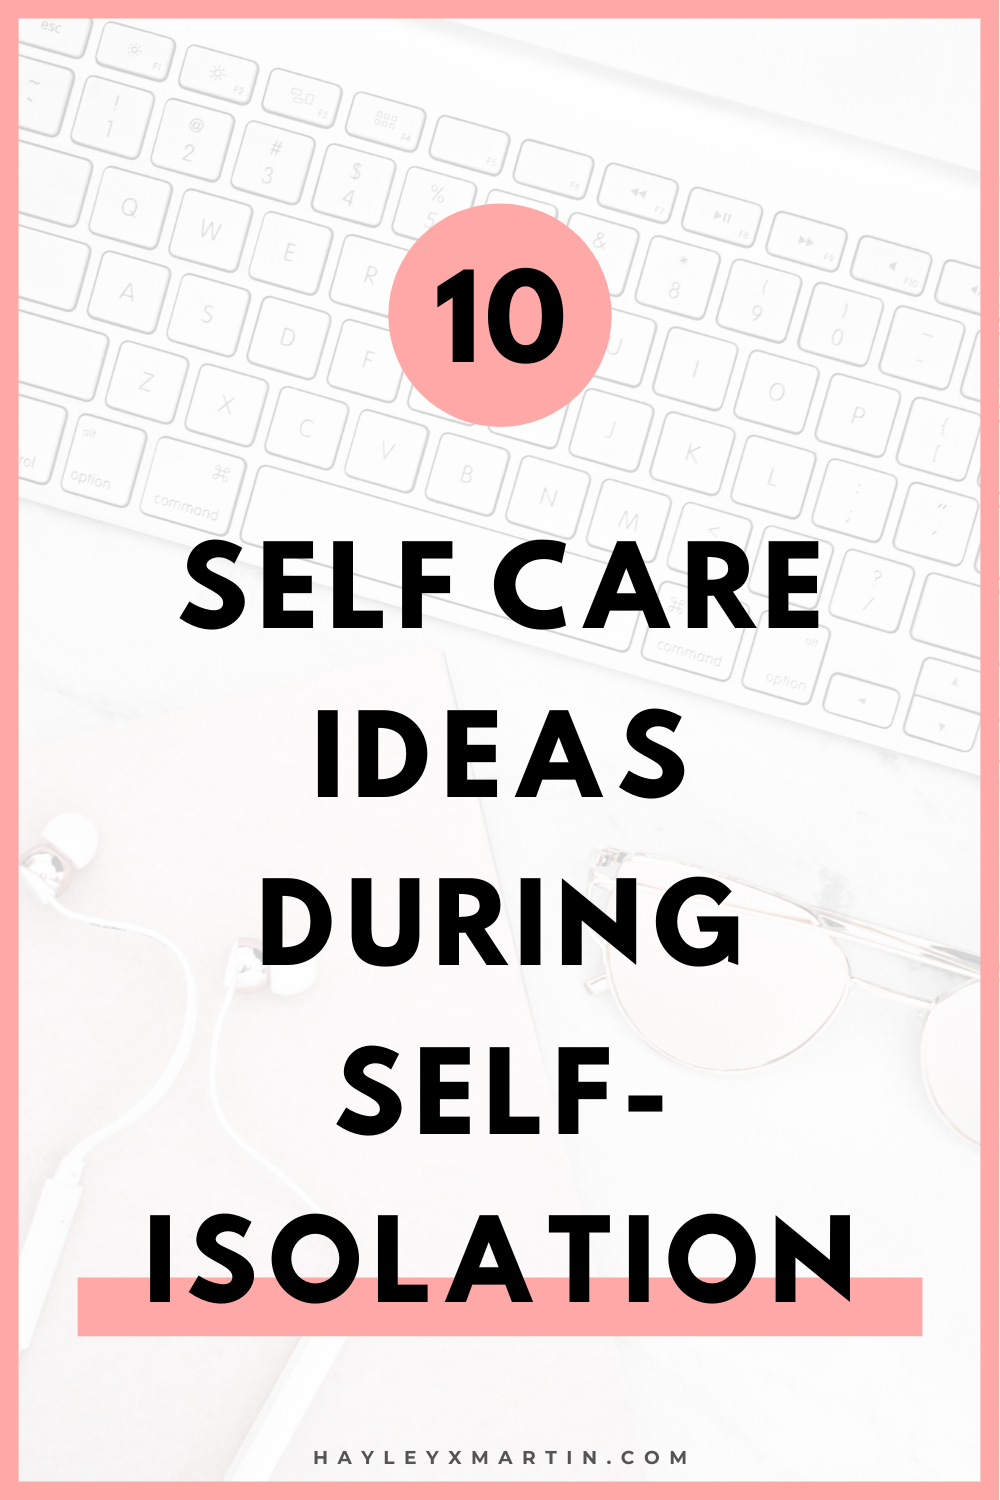 10 SELF CARE IDEAS DURING SELF-ISOLATION | HAYLEYXMARTIN